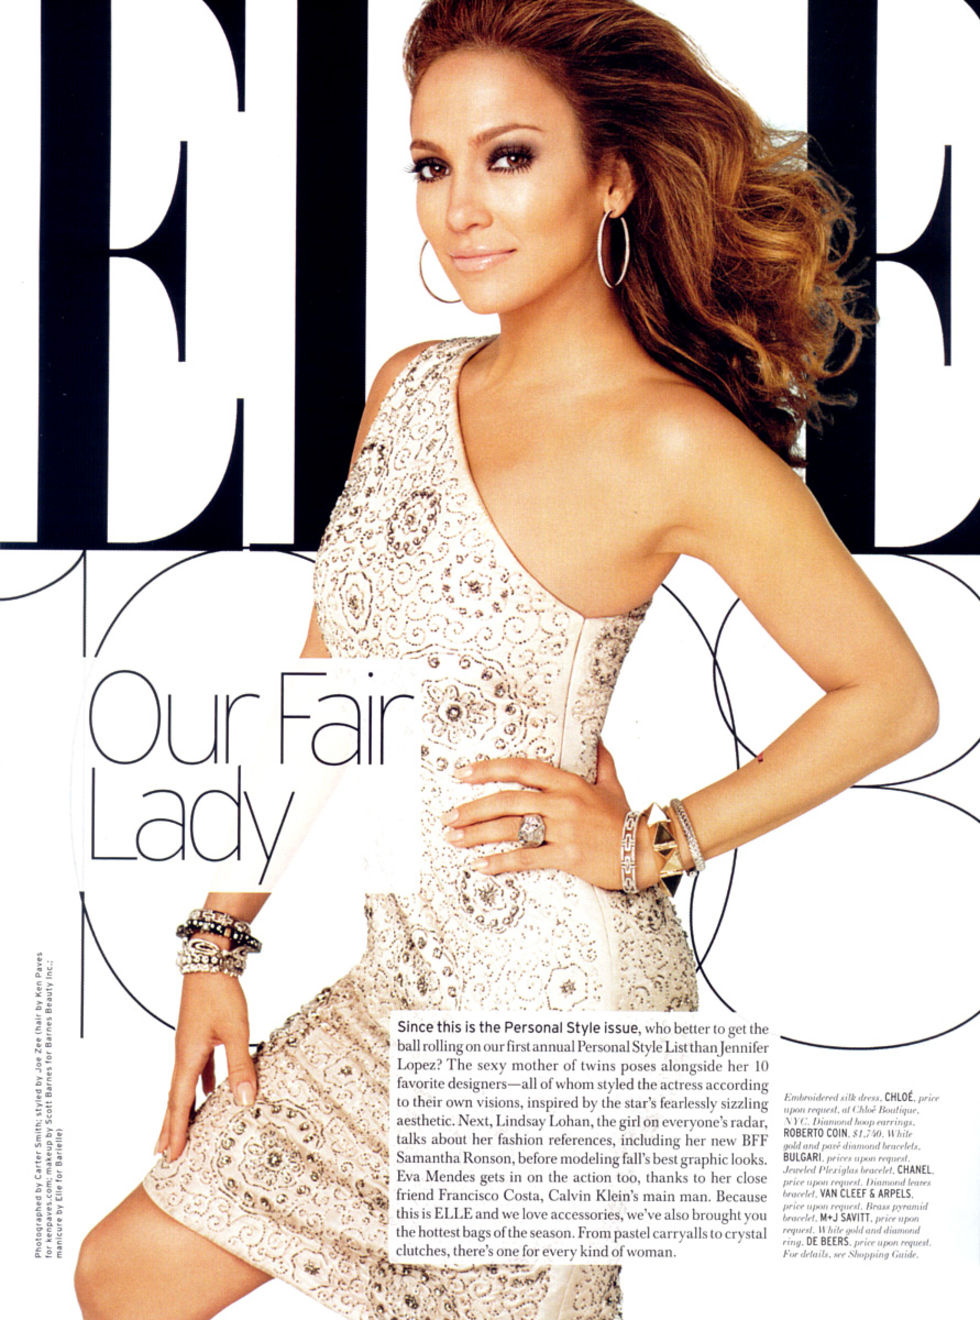 jennifer-lopez-elle-magazine-october-2008-2-01